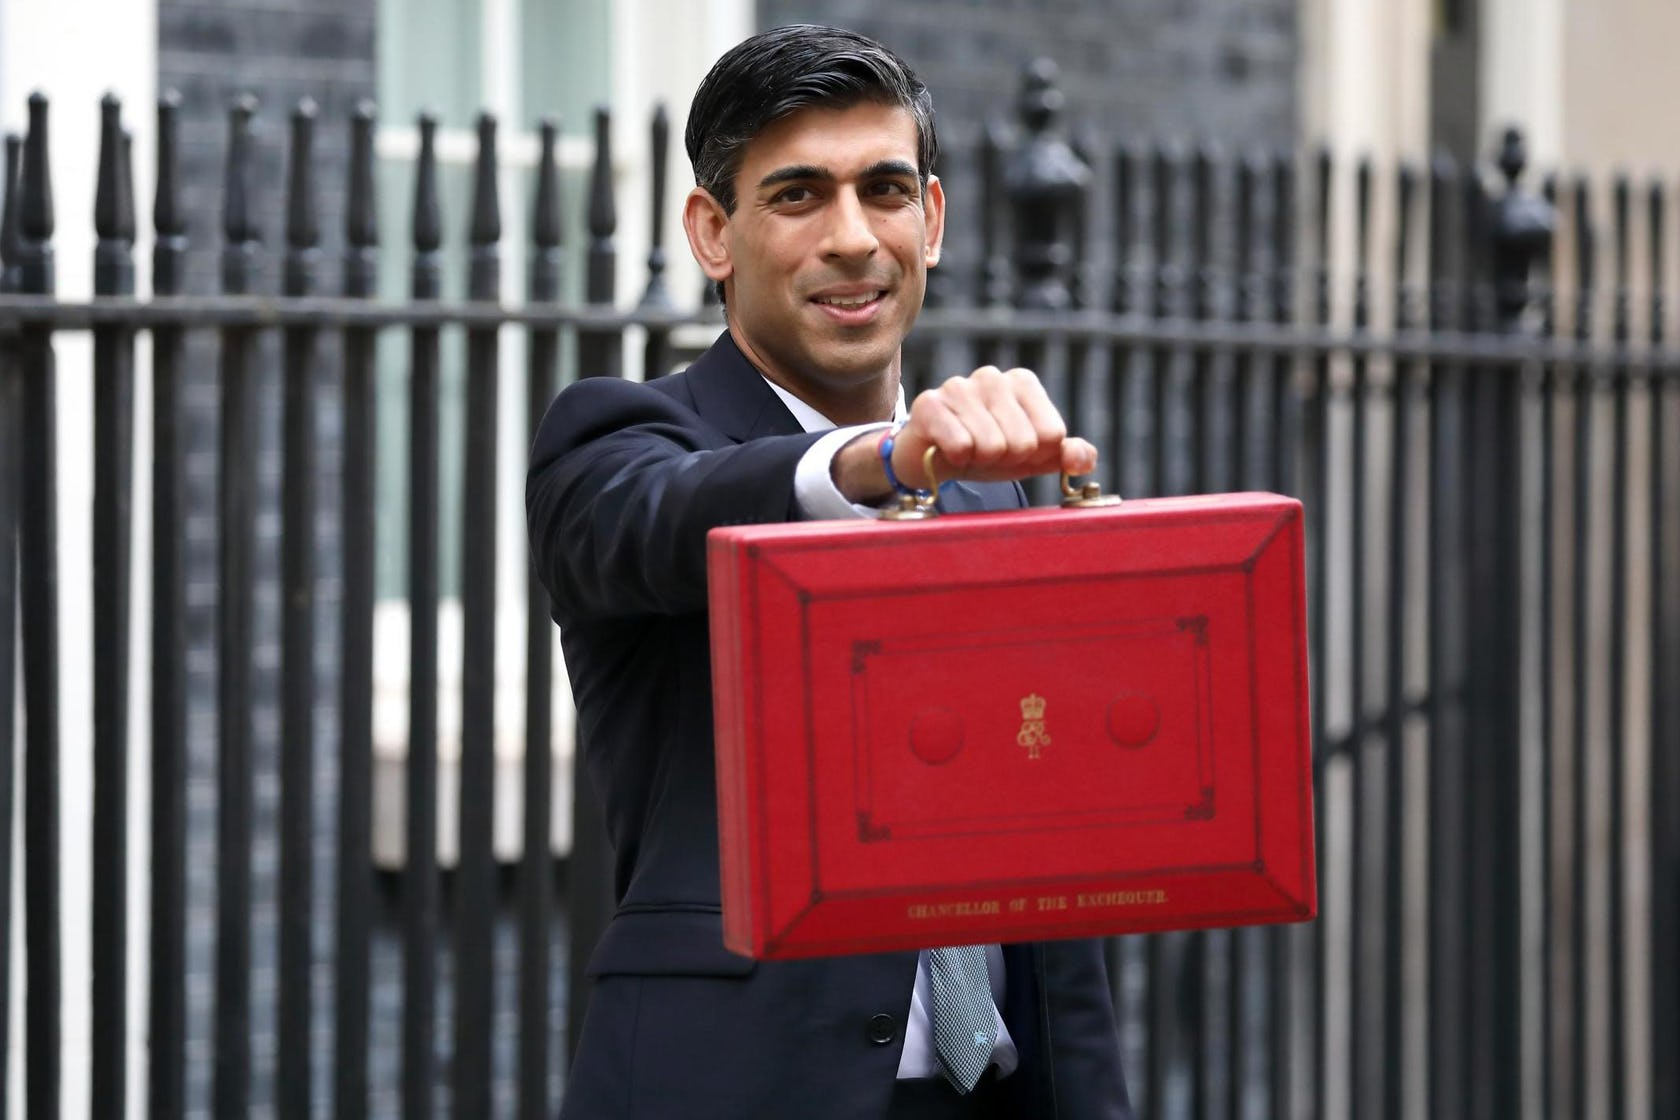 What does a delayed Budget mean for employers?